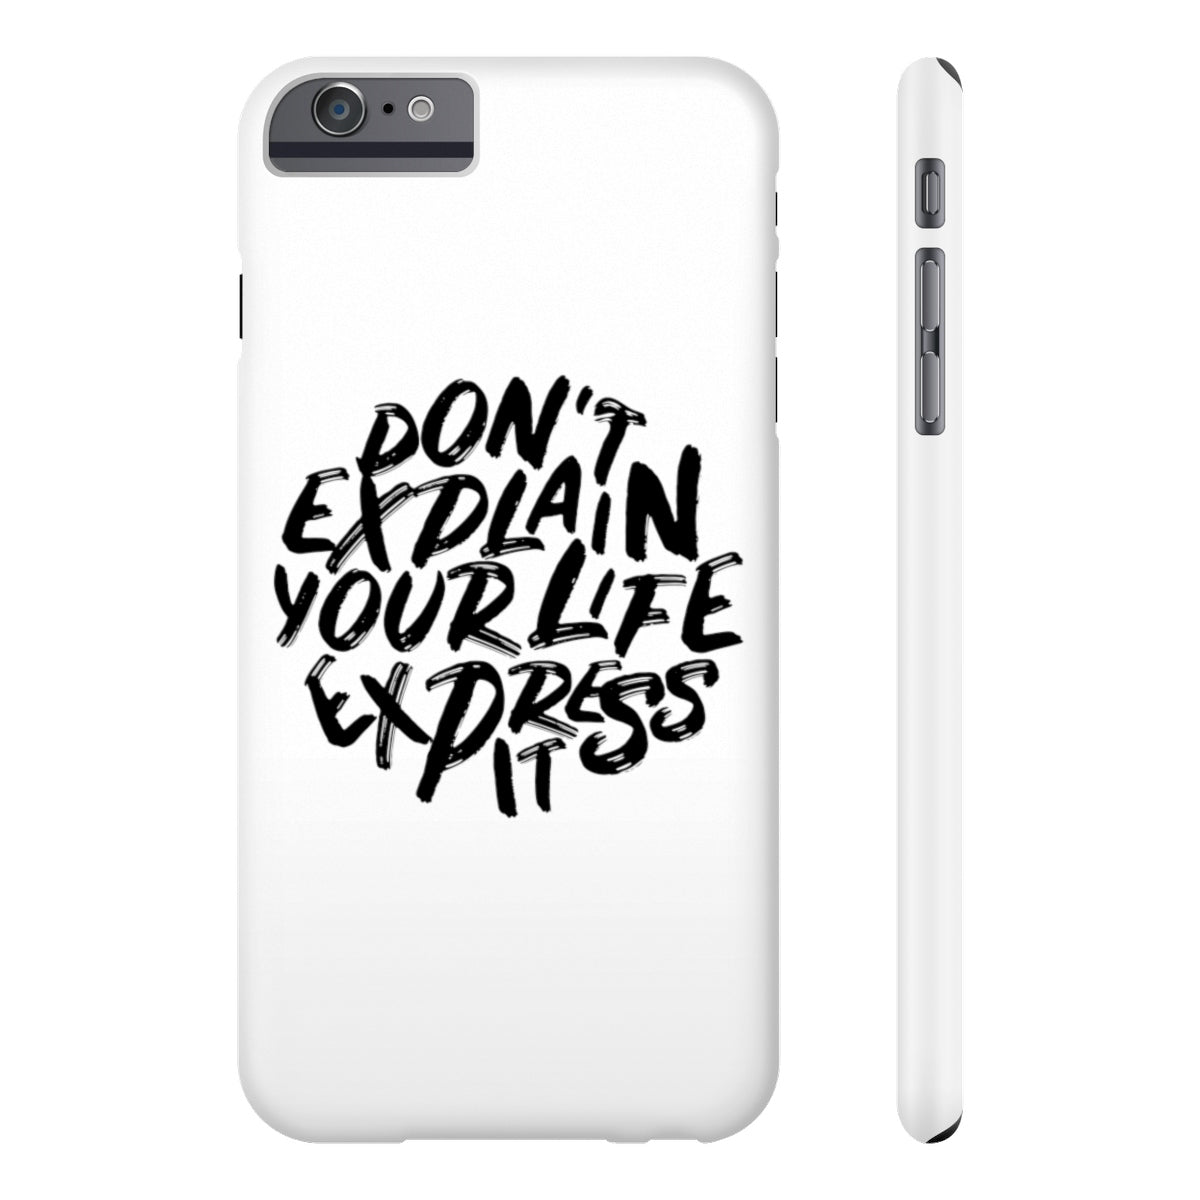 Dont Explain Your Life Express It Case Mate Slim Phone Cases